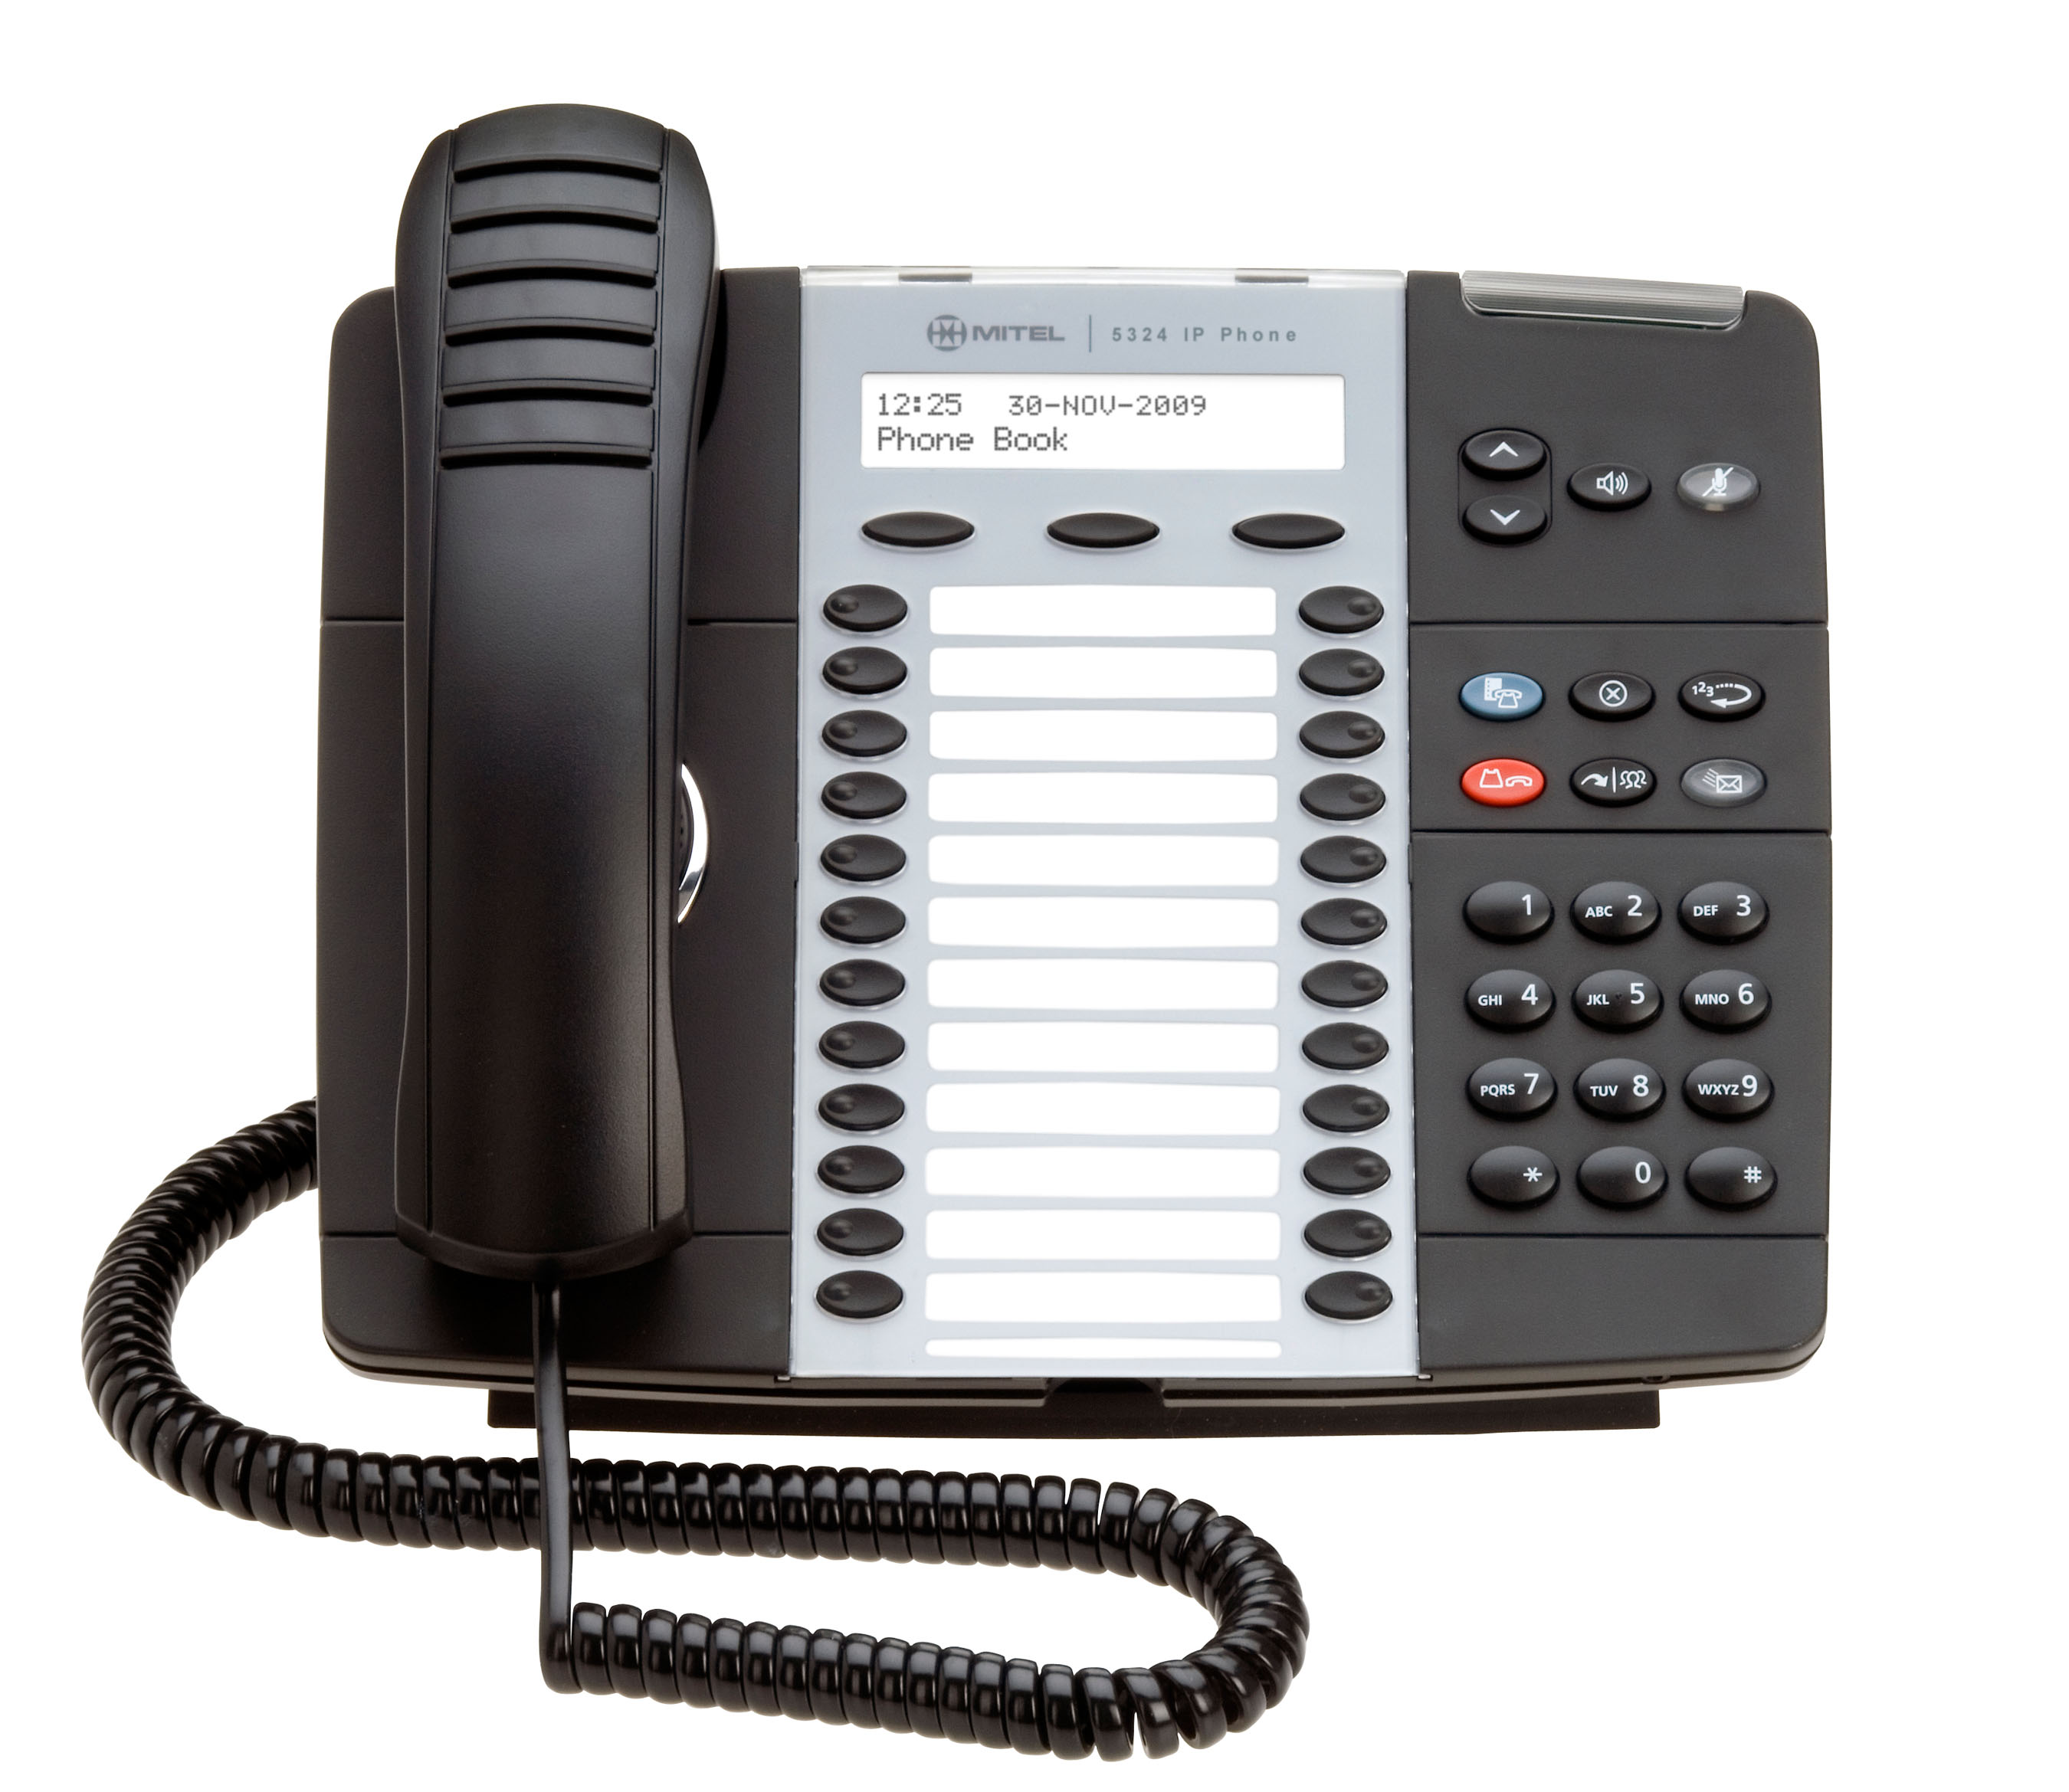 Mitel Model 5324 VoIP Business Telephone